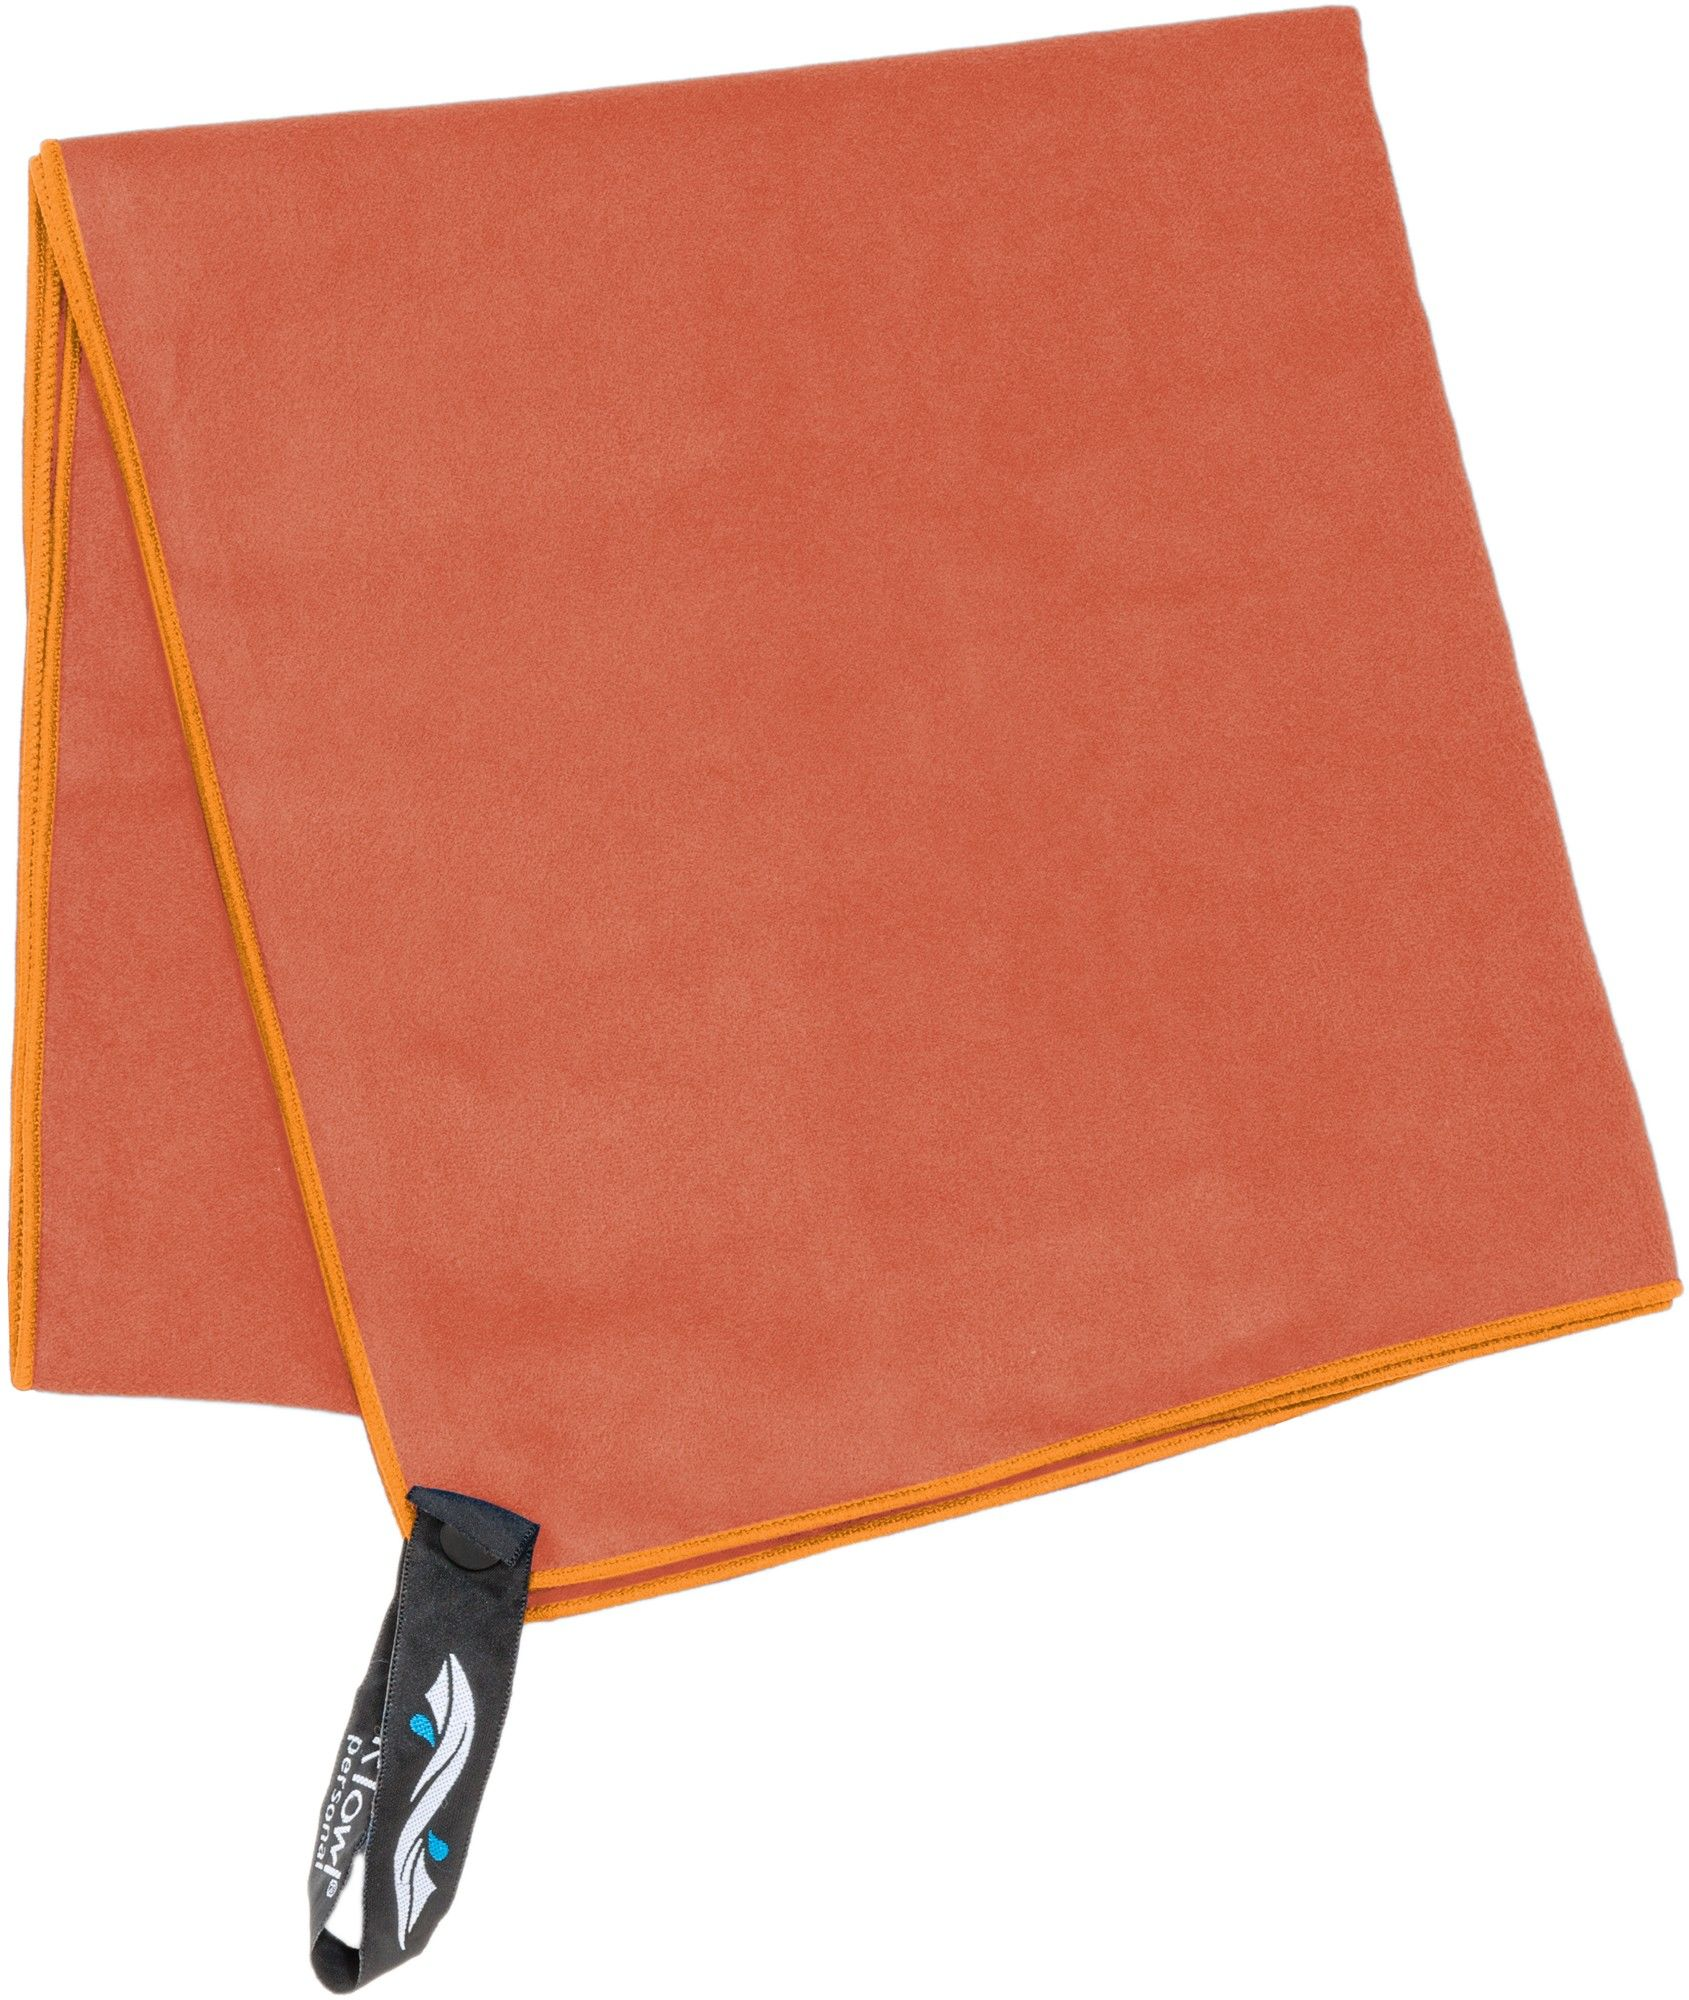 PackTowl Personal L-Hand Orange, Outdoor-Hygiene, One Size